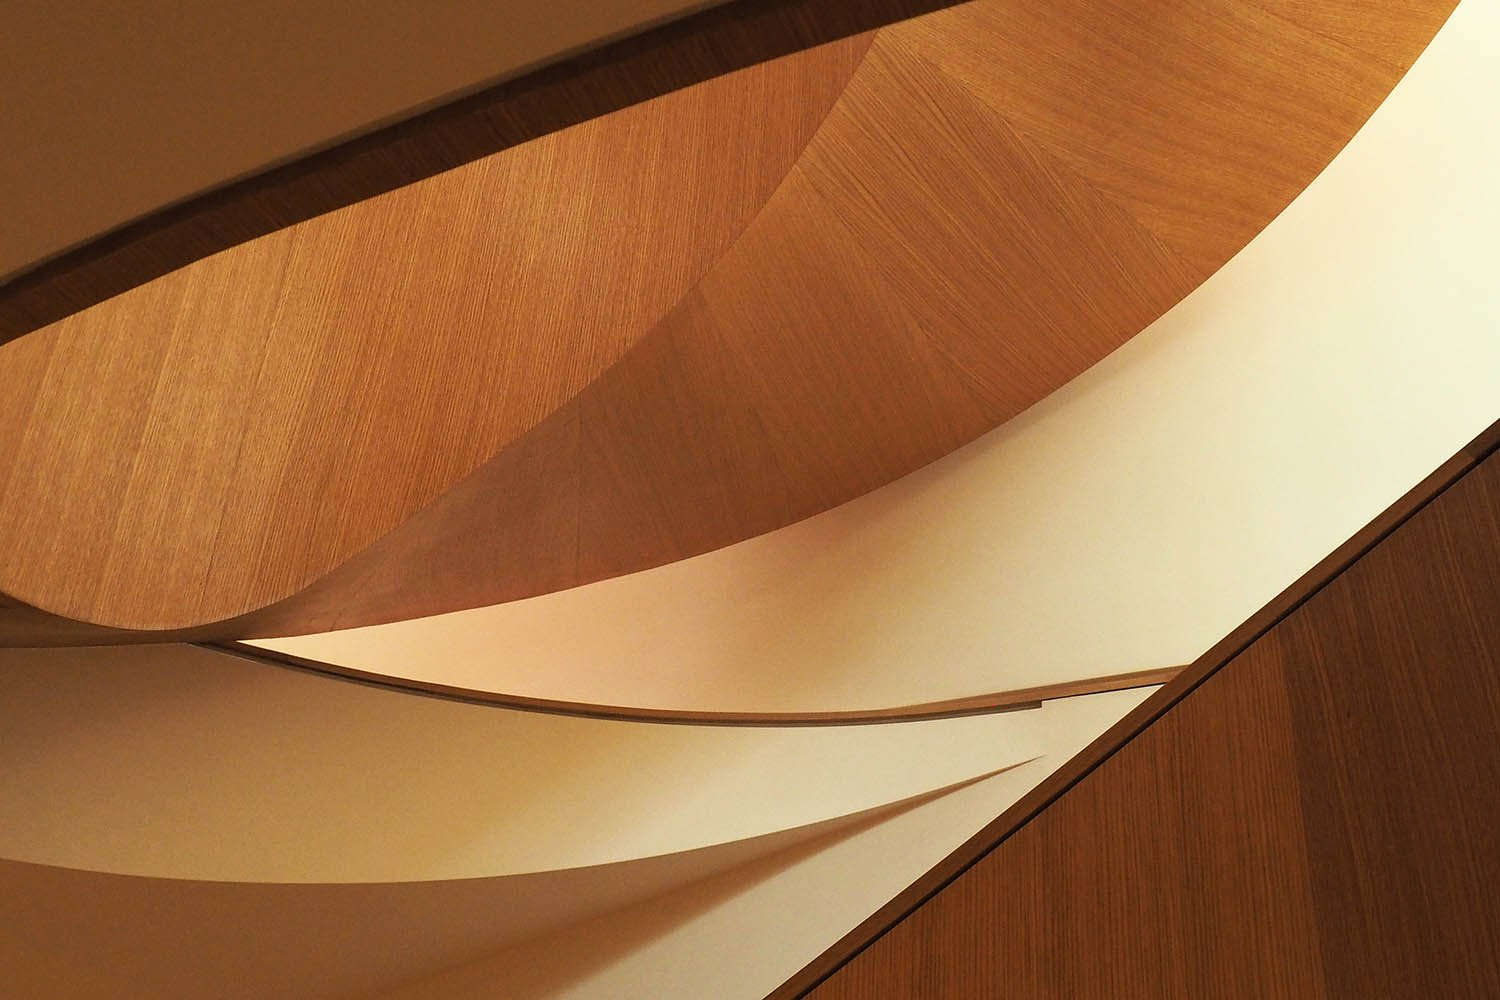 A detail view of material weaving at the stair. Ben Rahn/A-Frame Inc.